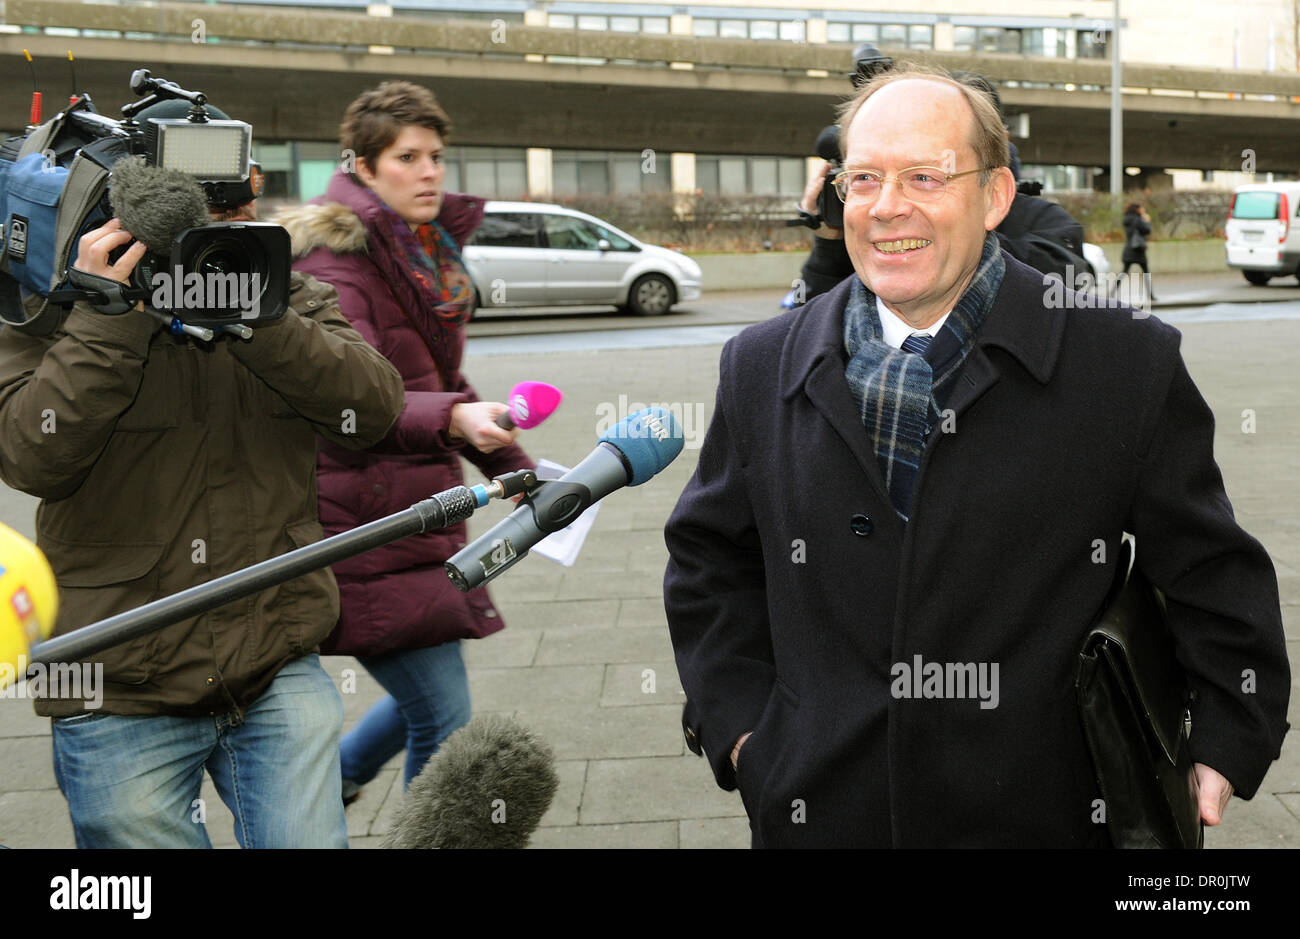 Hanover, Germany. 17th Jan, 2014. Lothar Hageboelling, former chief of the Lower Saxony Chancellery, walks to the regional court in Hanover, Germany, 17 January 2014. Hageboelling was invited as a witness in the corruption trial against Olaf Glaeseker. Photo: HOLGER HOLLEMANN/dpa/Alamy Live News - Stock Image